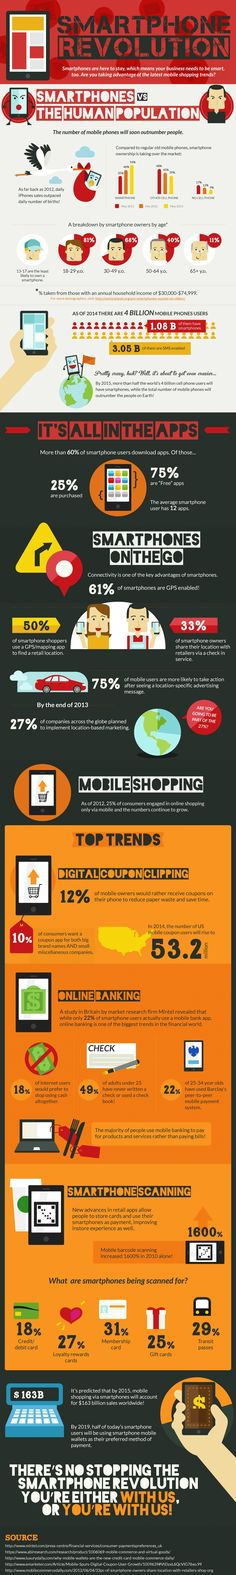 This infographic details the smartphone revolution already taking place within the mobile market.